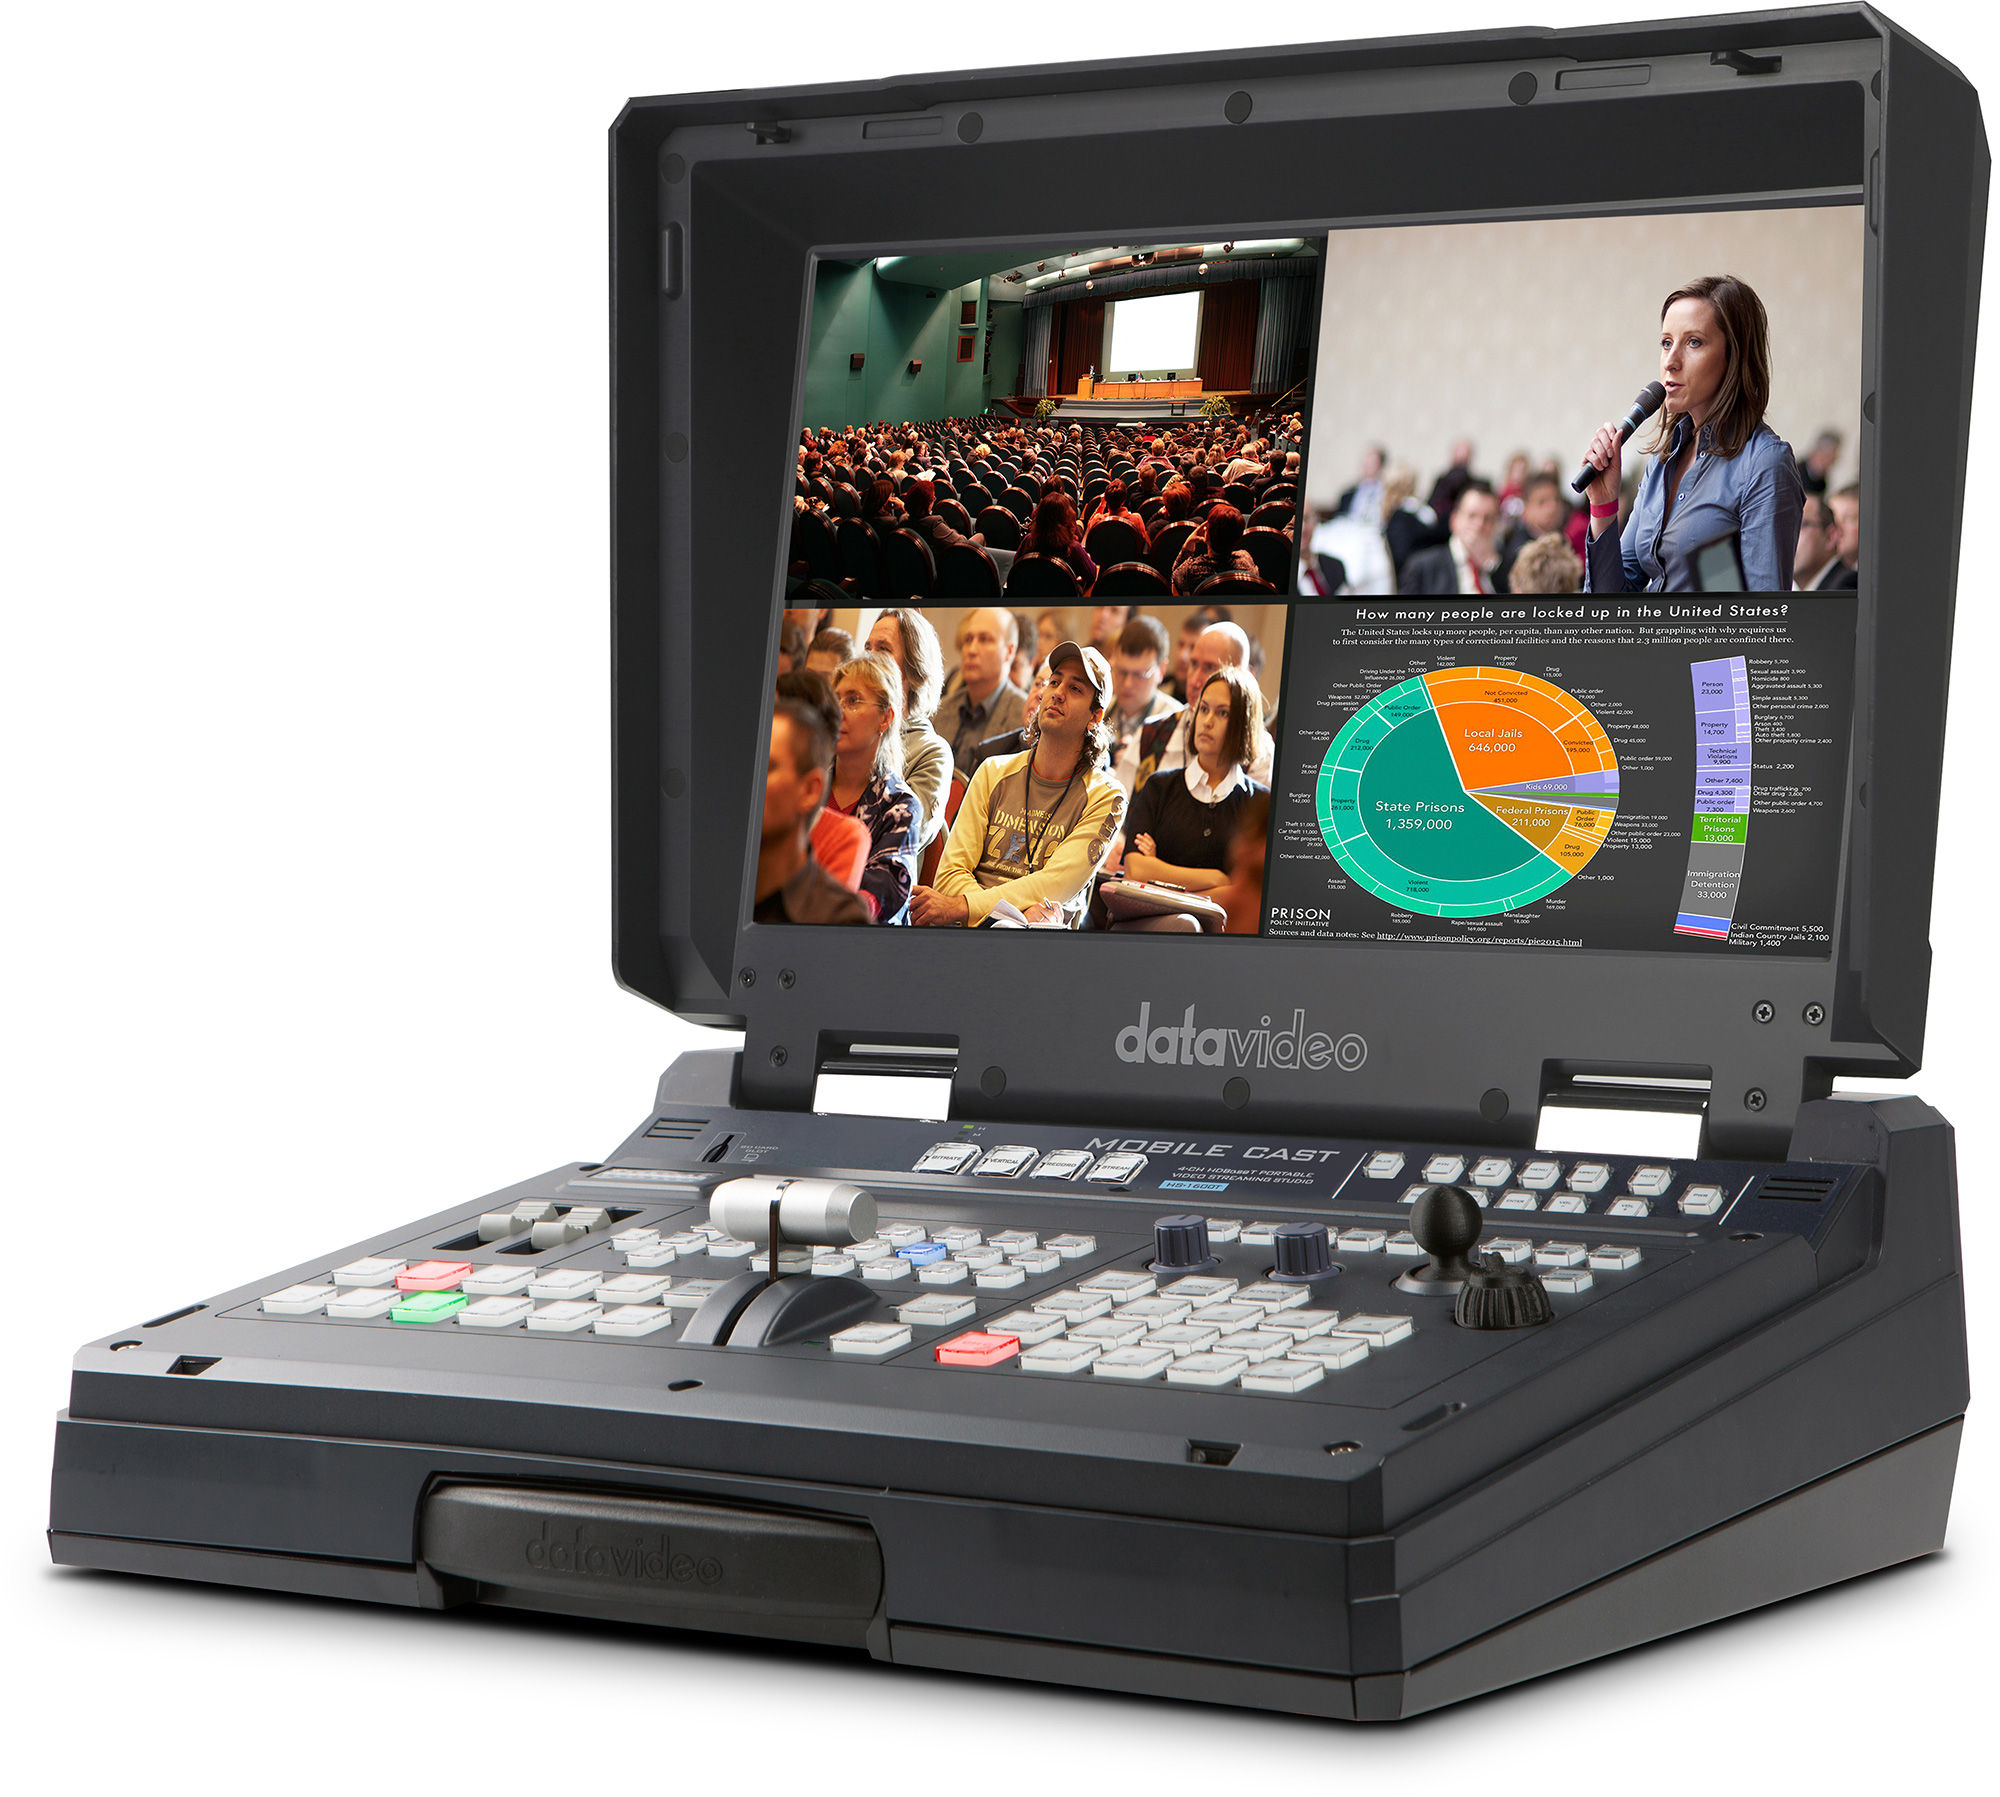 Datavideo HS-1600TMKII 4 Input HDBaseT Production Switcher with Built-In Streaming Encoder and Recorder DV-HS1600TMKII